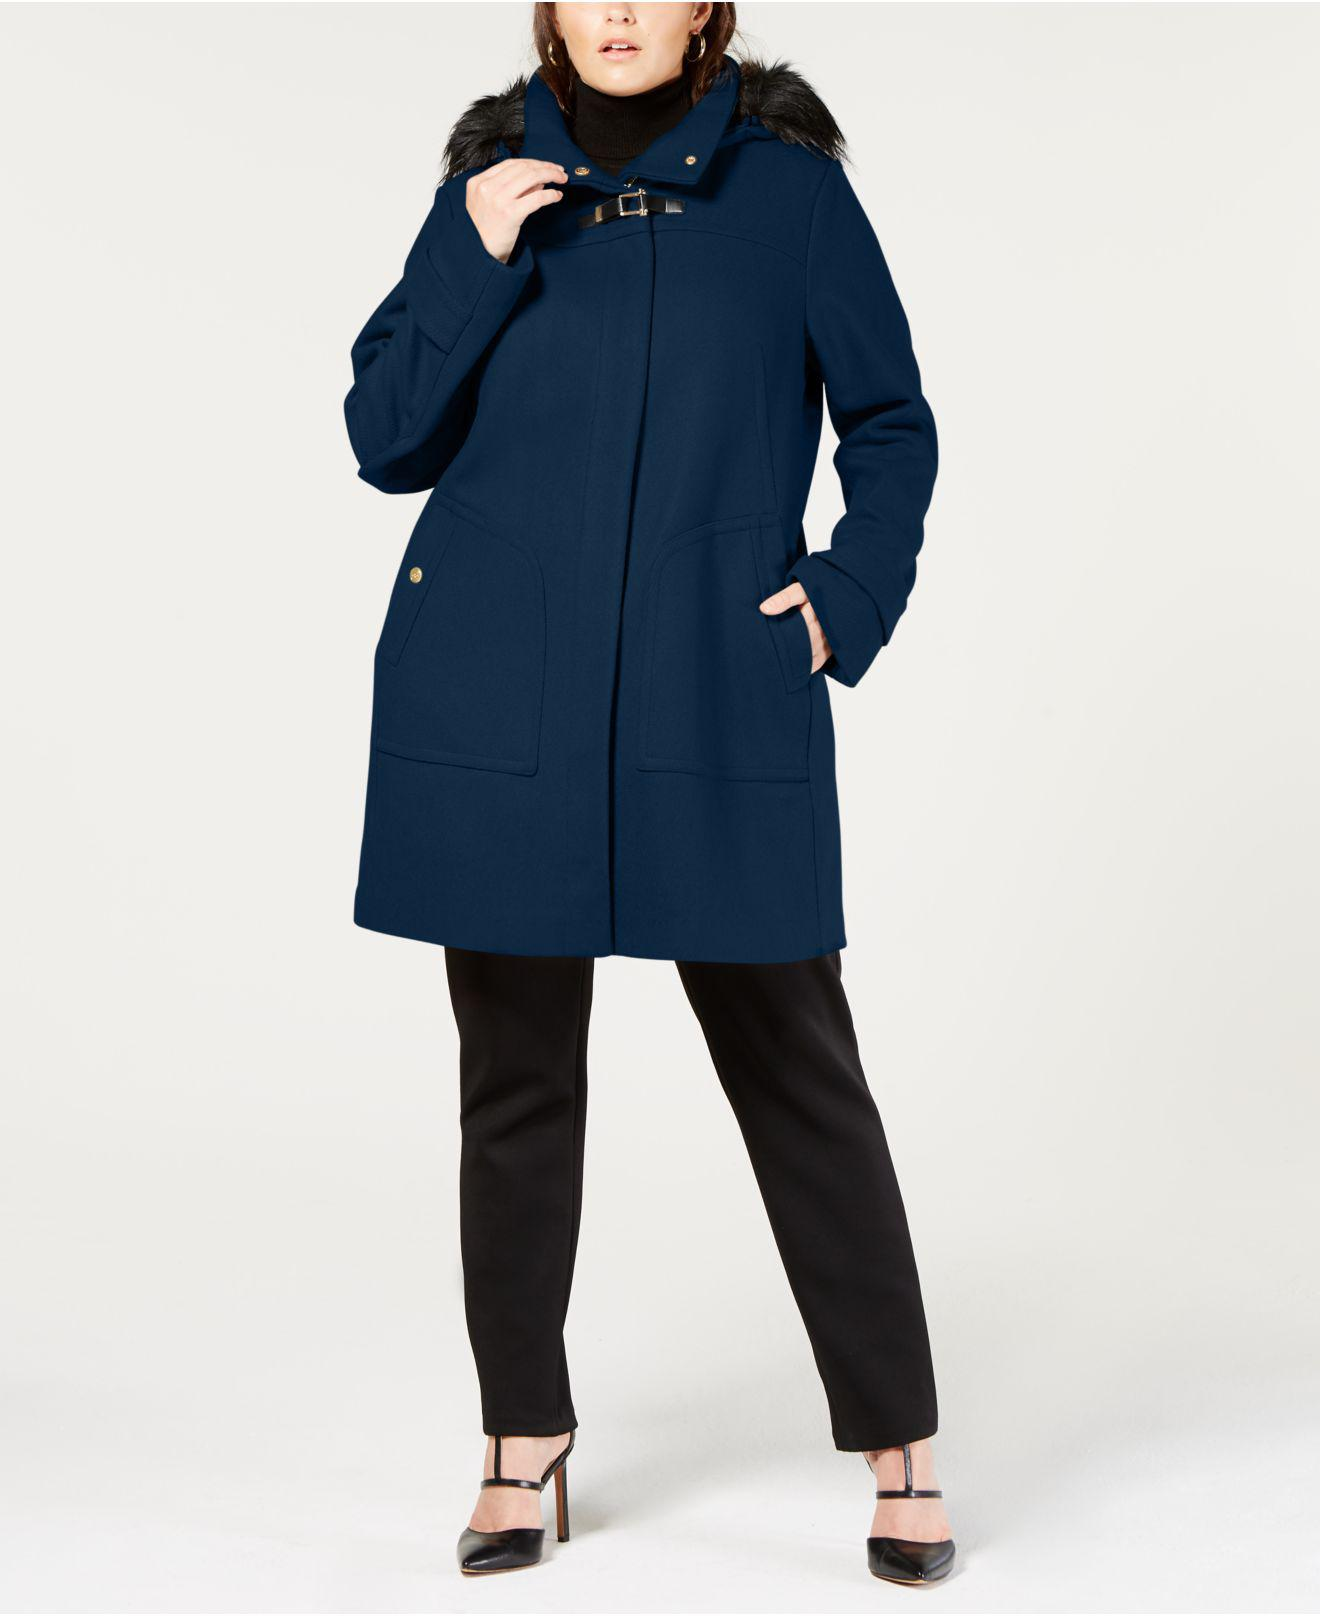 6b9ed965be92d Lyst - Cole Haan Plus Size Faux Fur Hooded Wool Toggle Coat in Blue